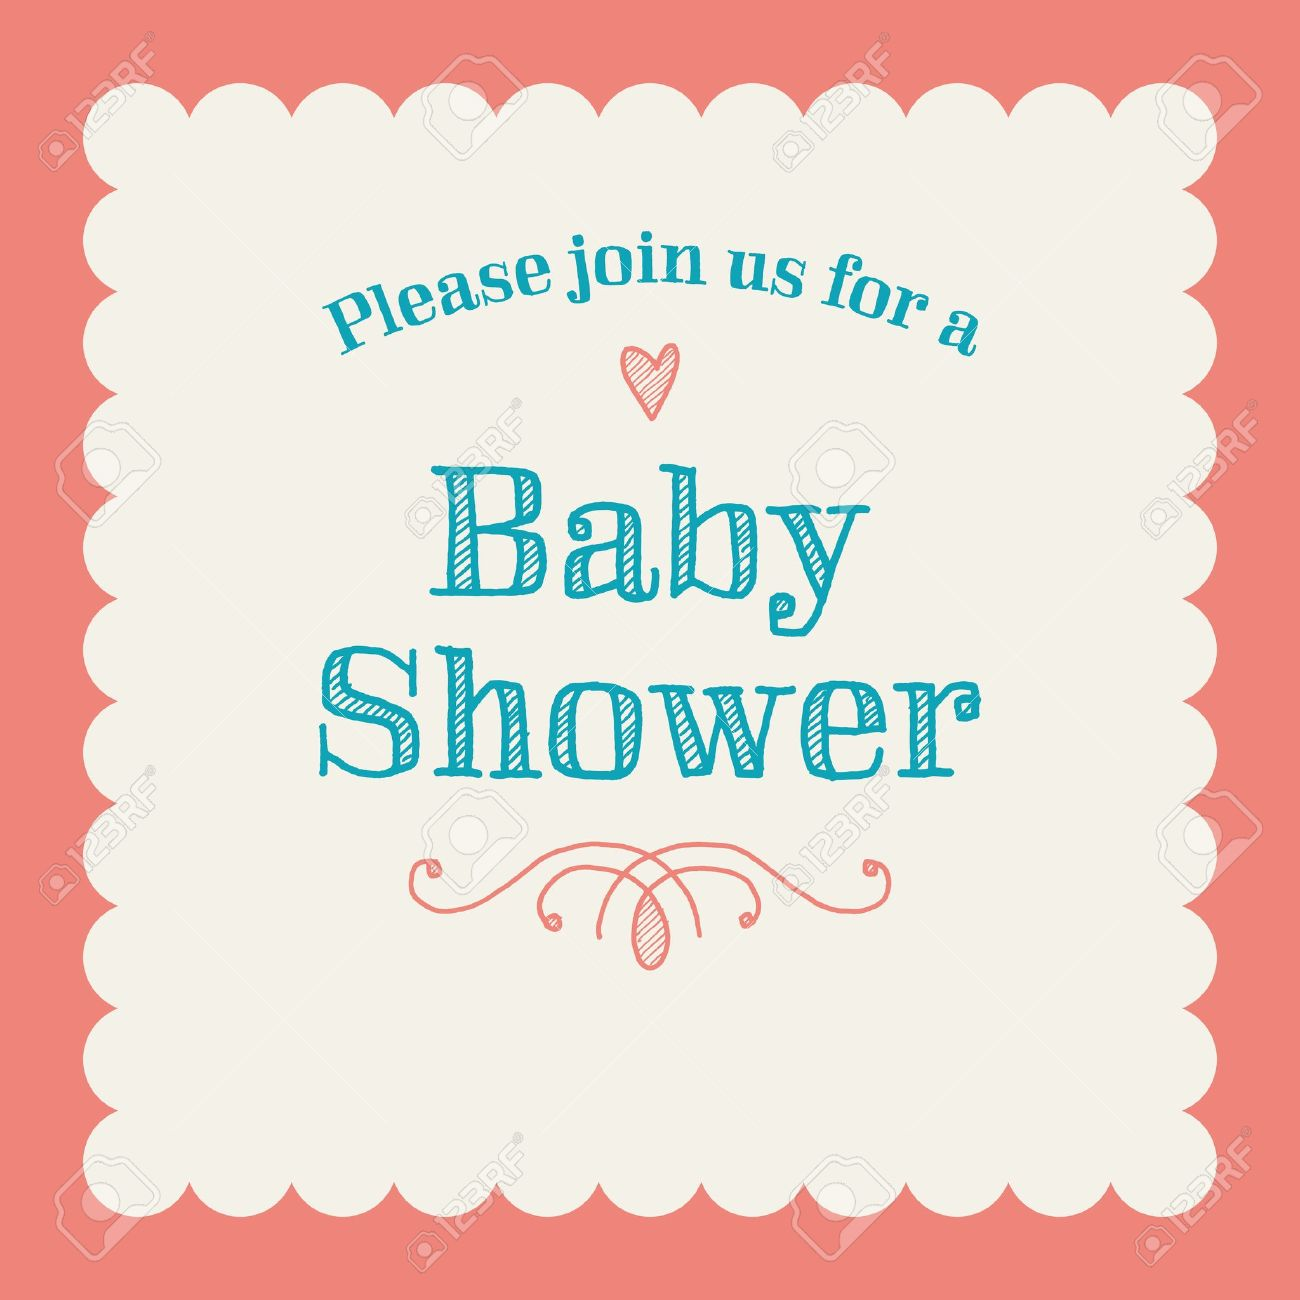 baby shower invitation card editable with type font ornaments